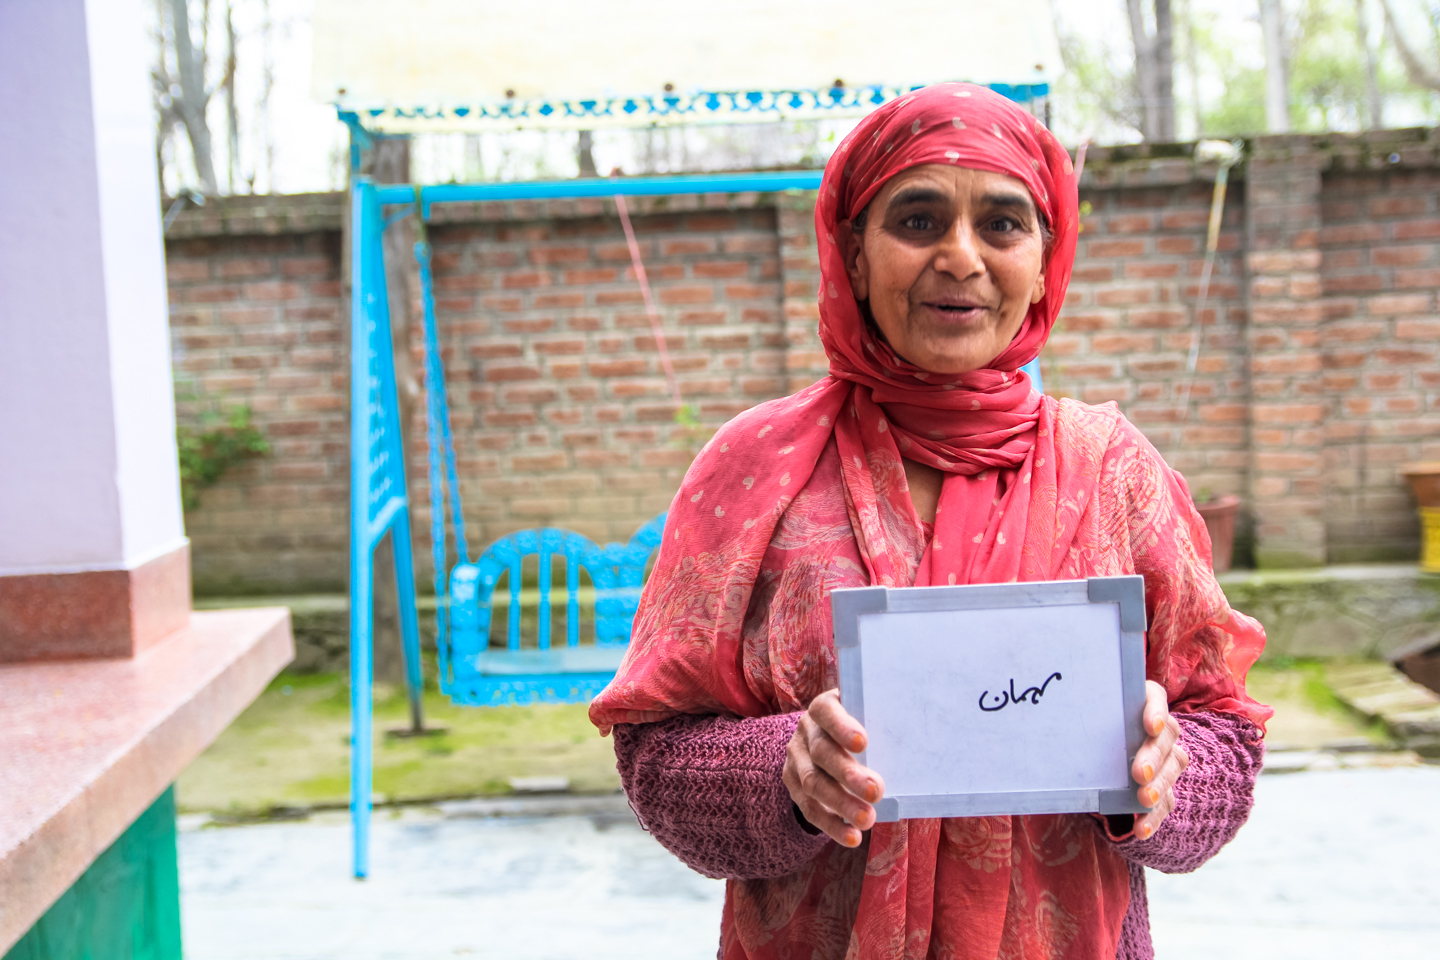 Fatima Tariq welcomes each guest who visits her home outside of Srinagar, Kashmir with a cup of chai. Her specialty is noon chai, salty tea, made in a samovar, a traditional copper tea kettle used for special occasions.